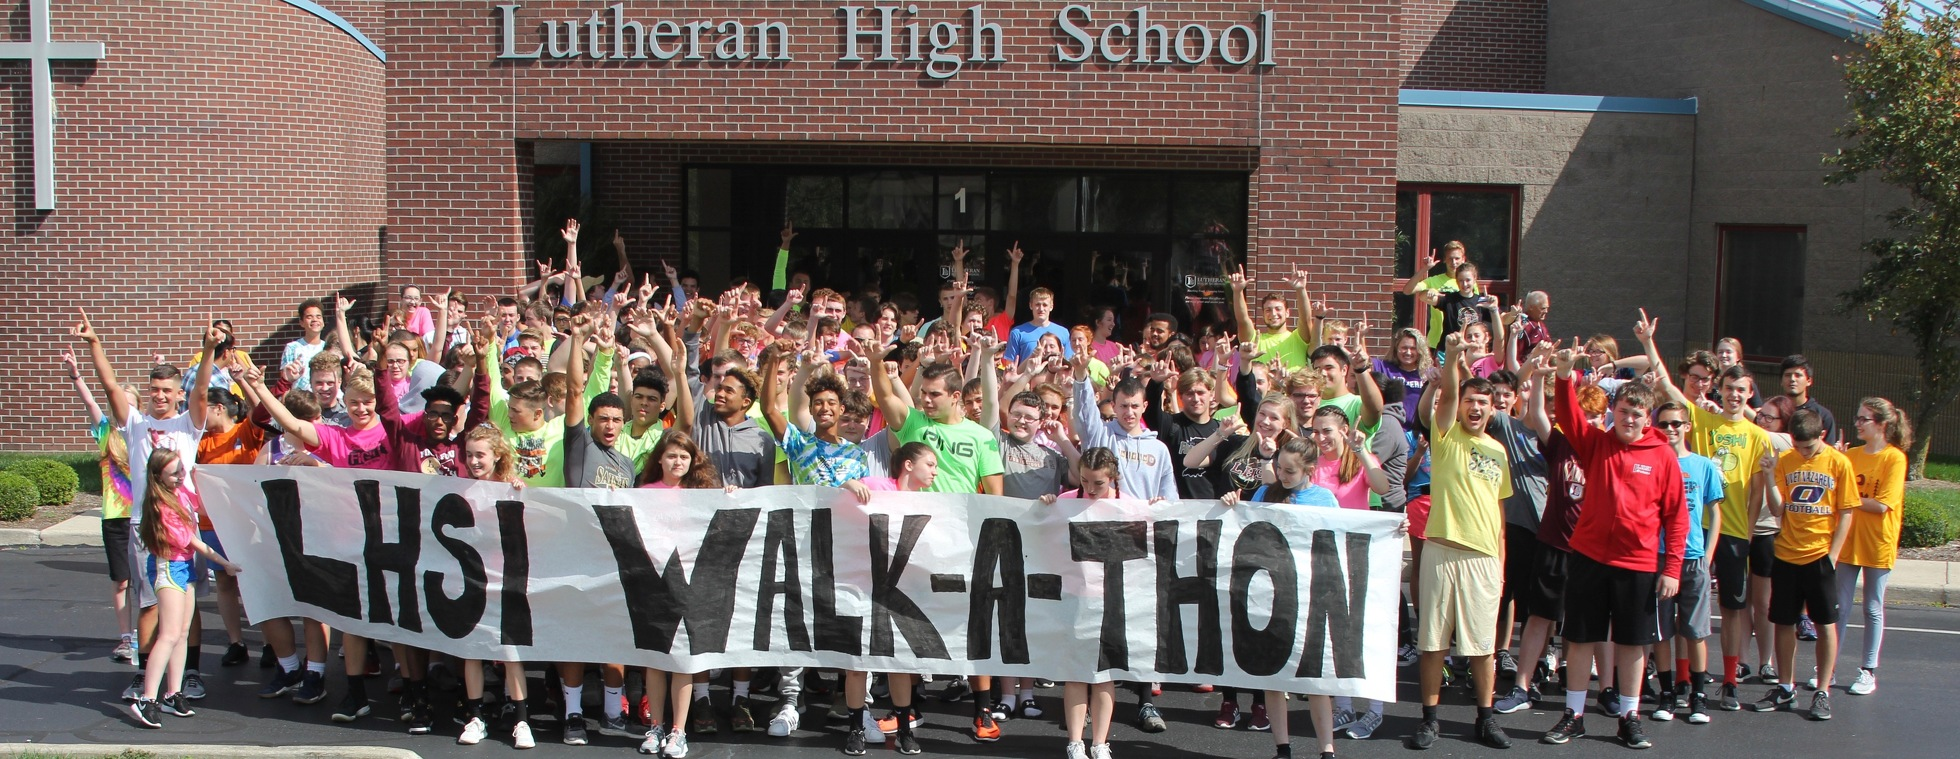 Saints Walk-a-Thon 2019